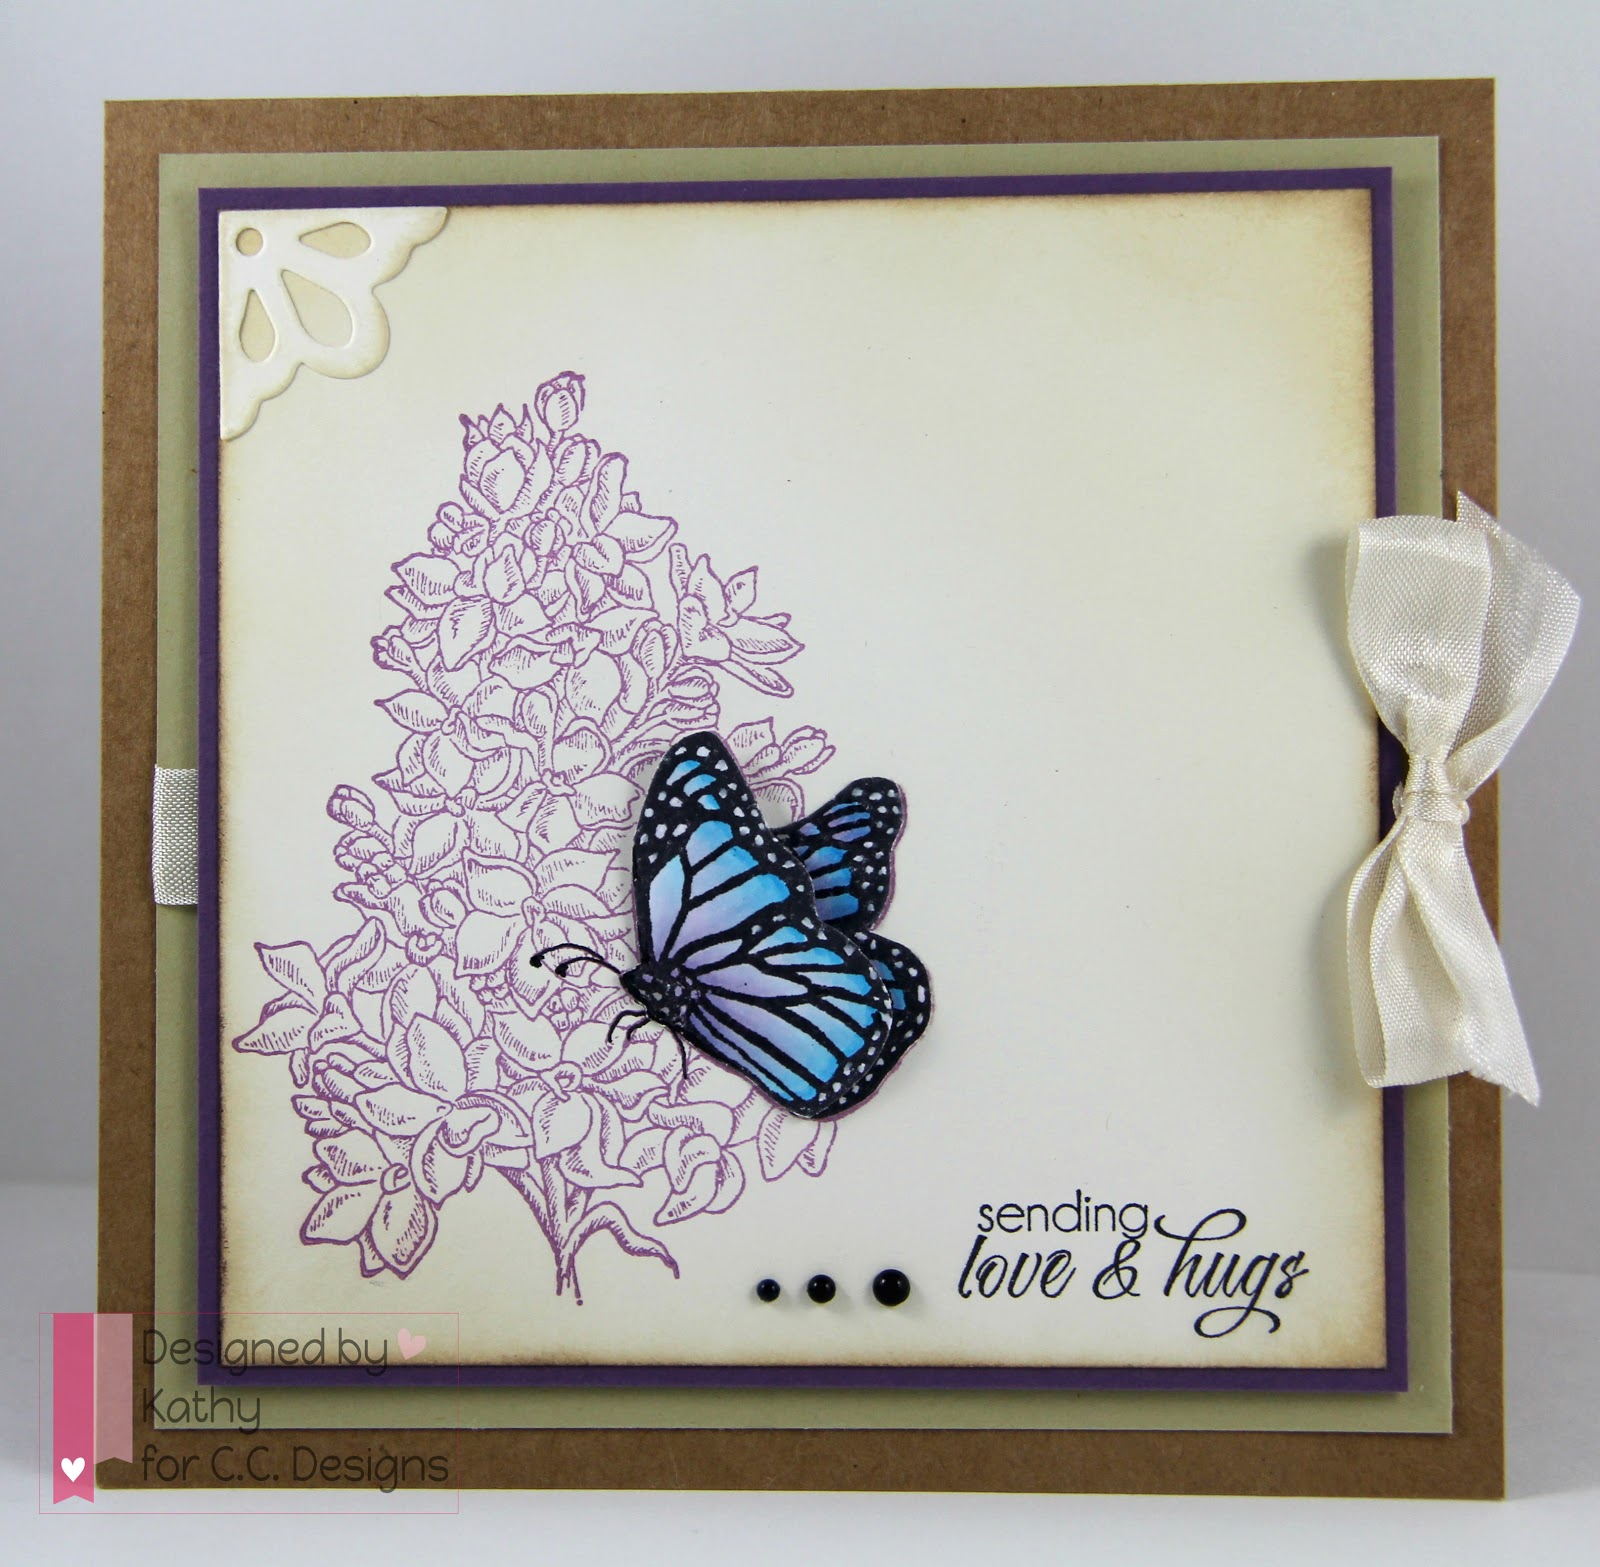 jennifer dove, lilac and butterfly, cc designs